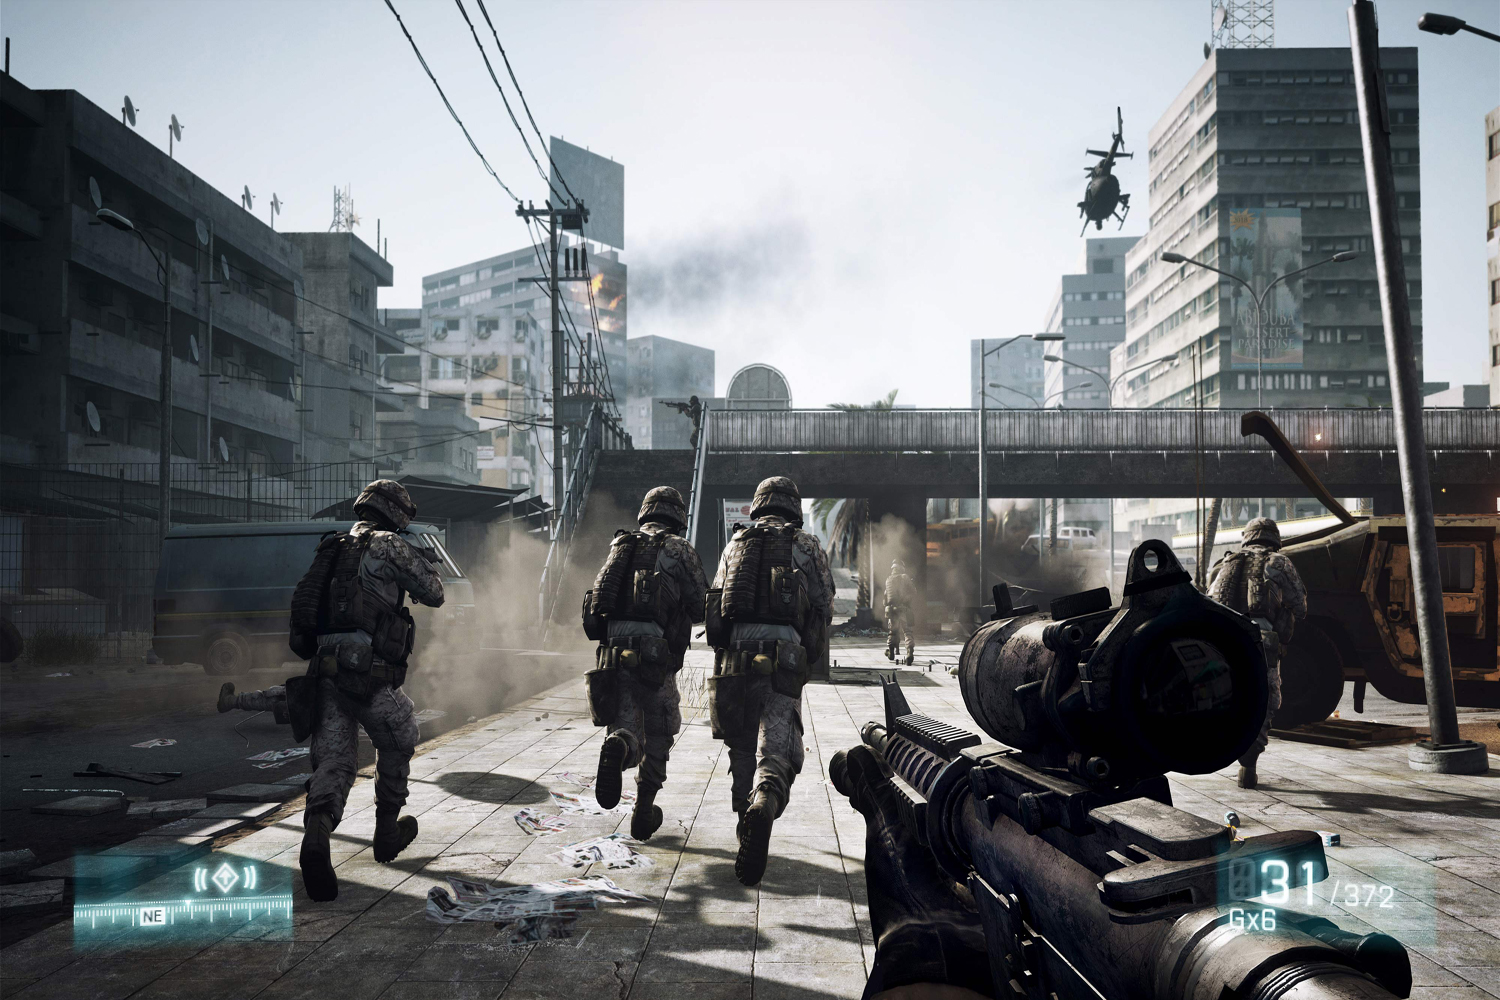 Battlefield 3 for Xbox 360, PlayStation 3, and PC